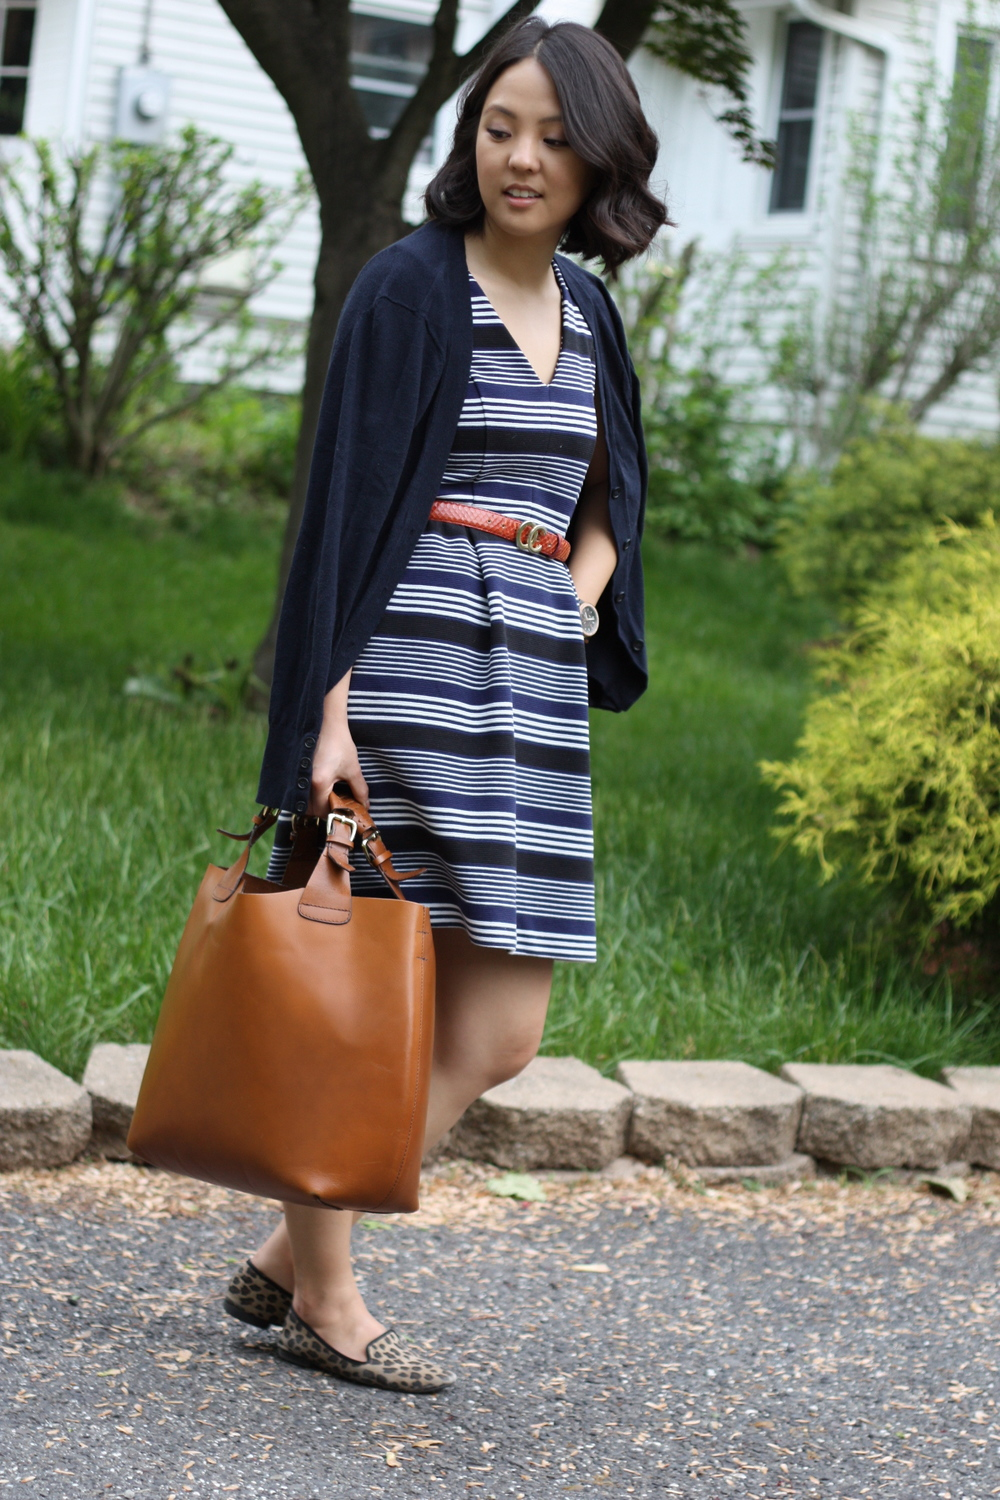 dress: madewell (similar  here ), cardigan: borrowed, belt: thrifted, bag: zara, shoes: target